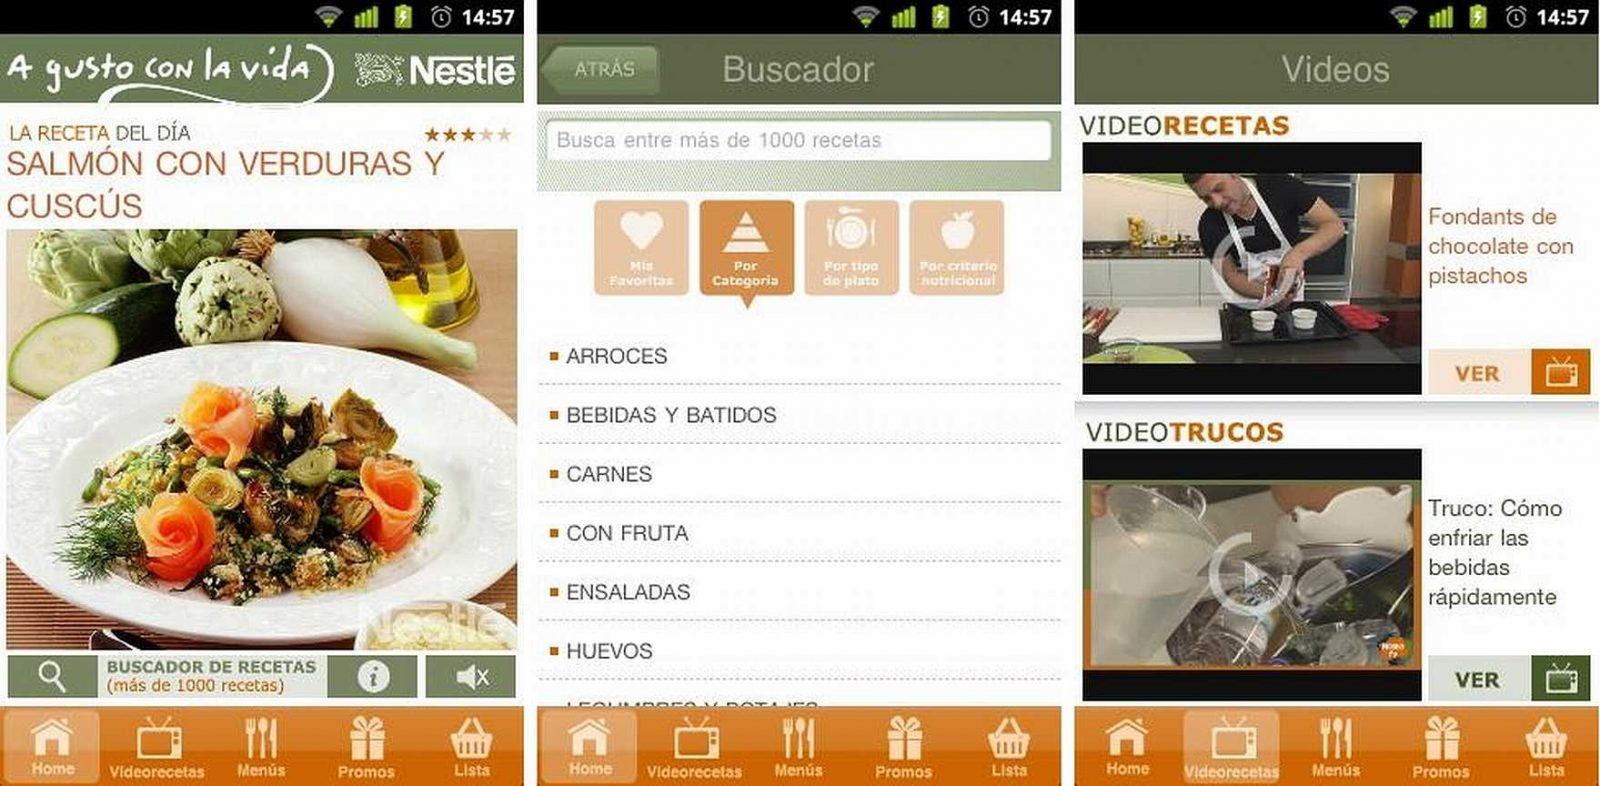 La cuisine typique de Camagüey a son application mobile